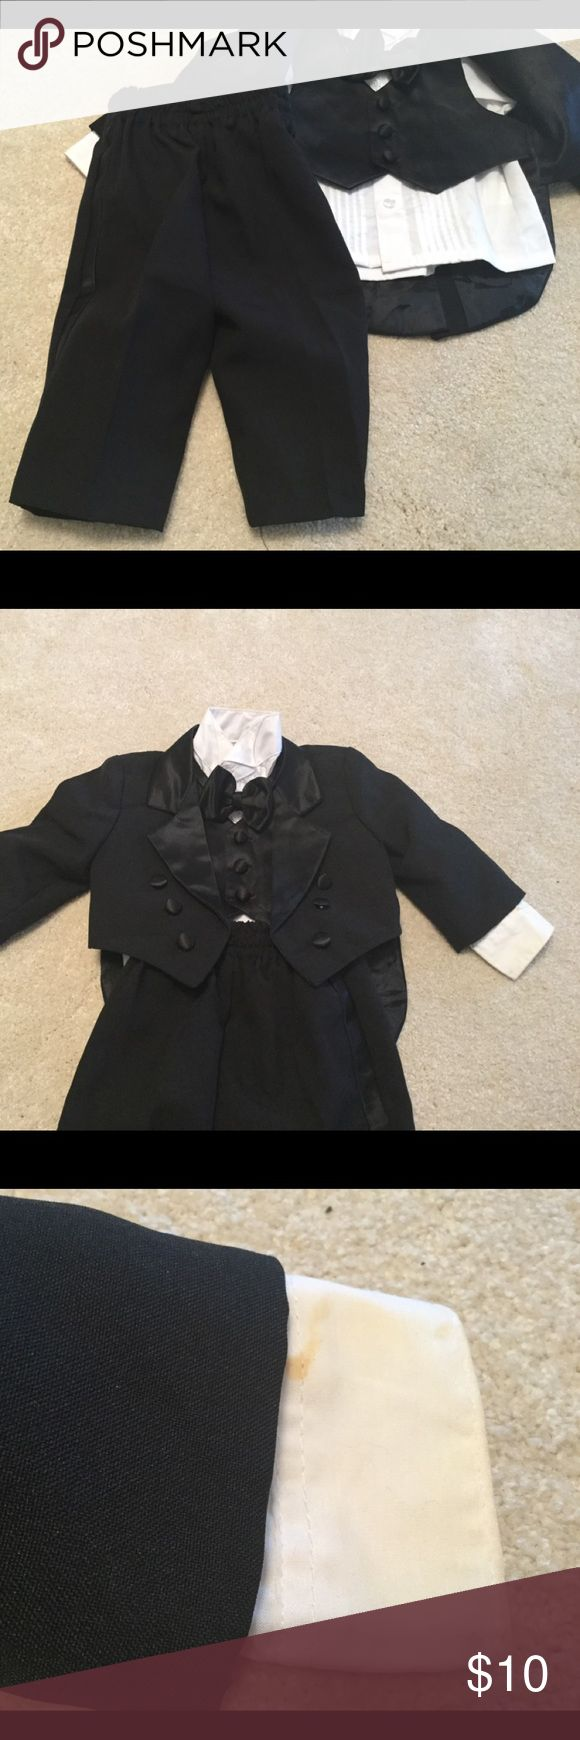 Size small baby boy tuxedo Used tuxedo size small, shirt has stains on cuff. This was not used by me, got it in huge clothing buy out . Maybe could be bleached off.  No refunds or returns Matching Sets